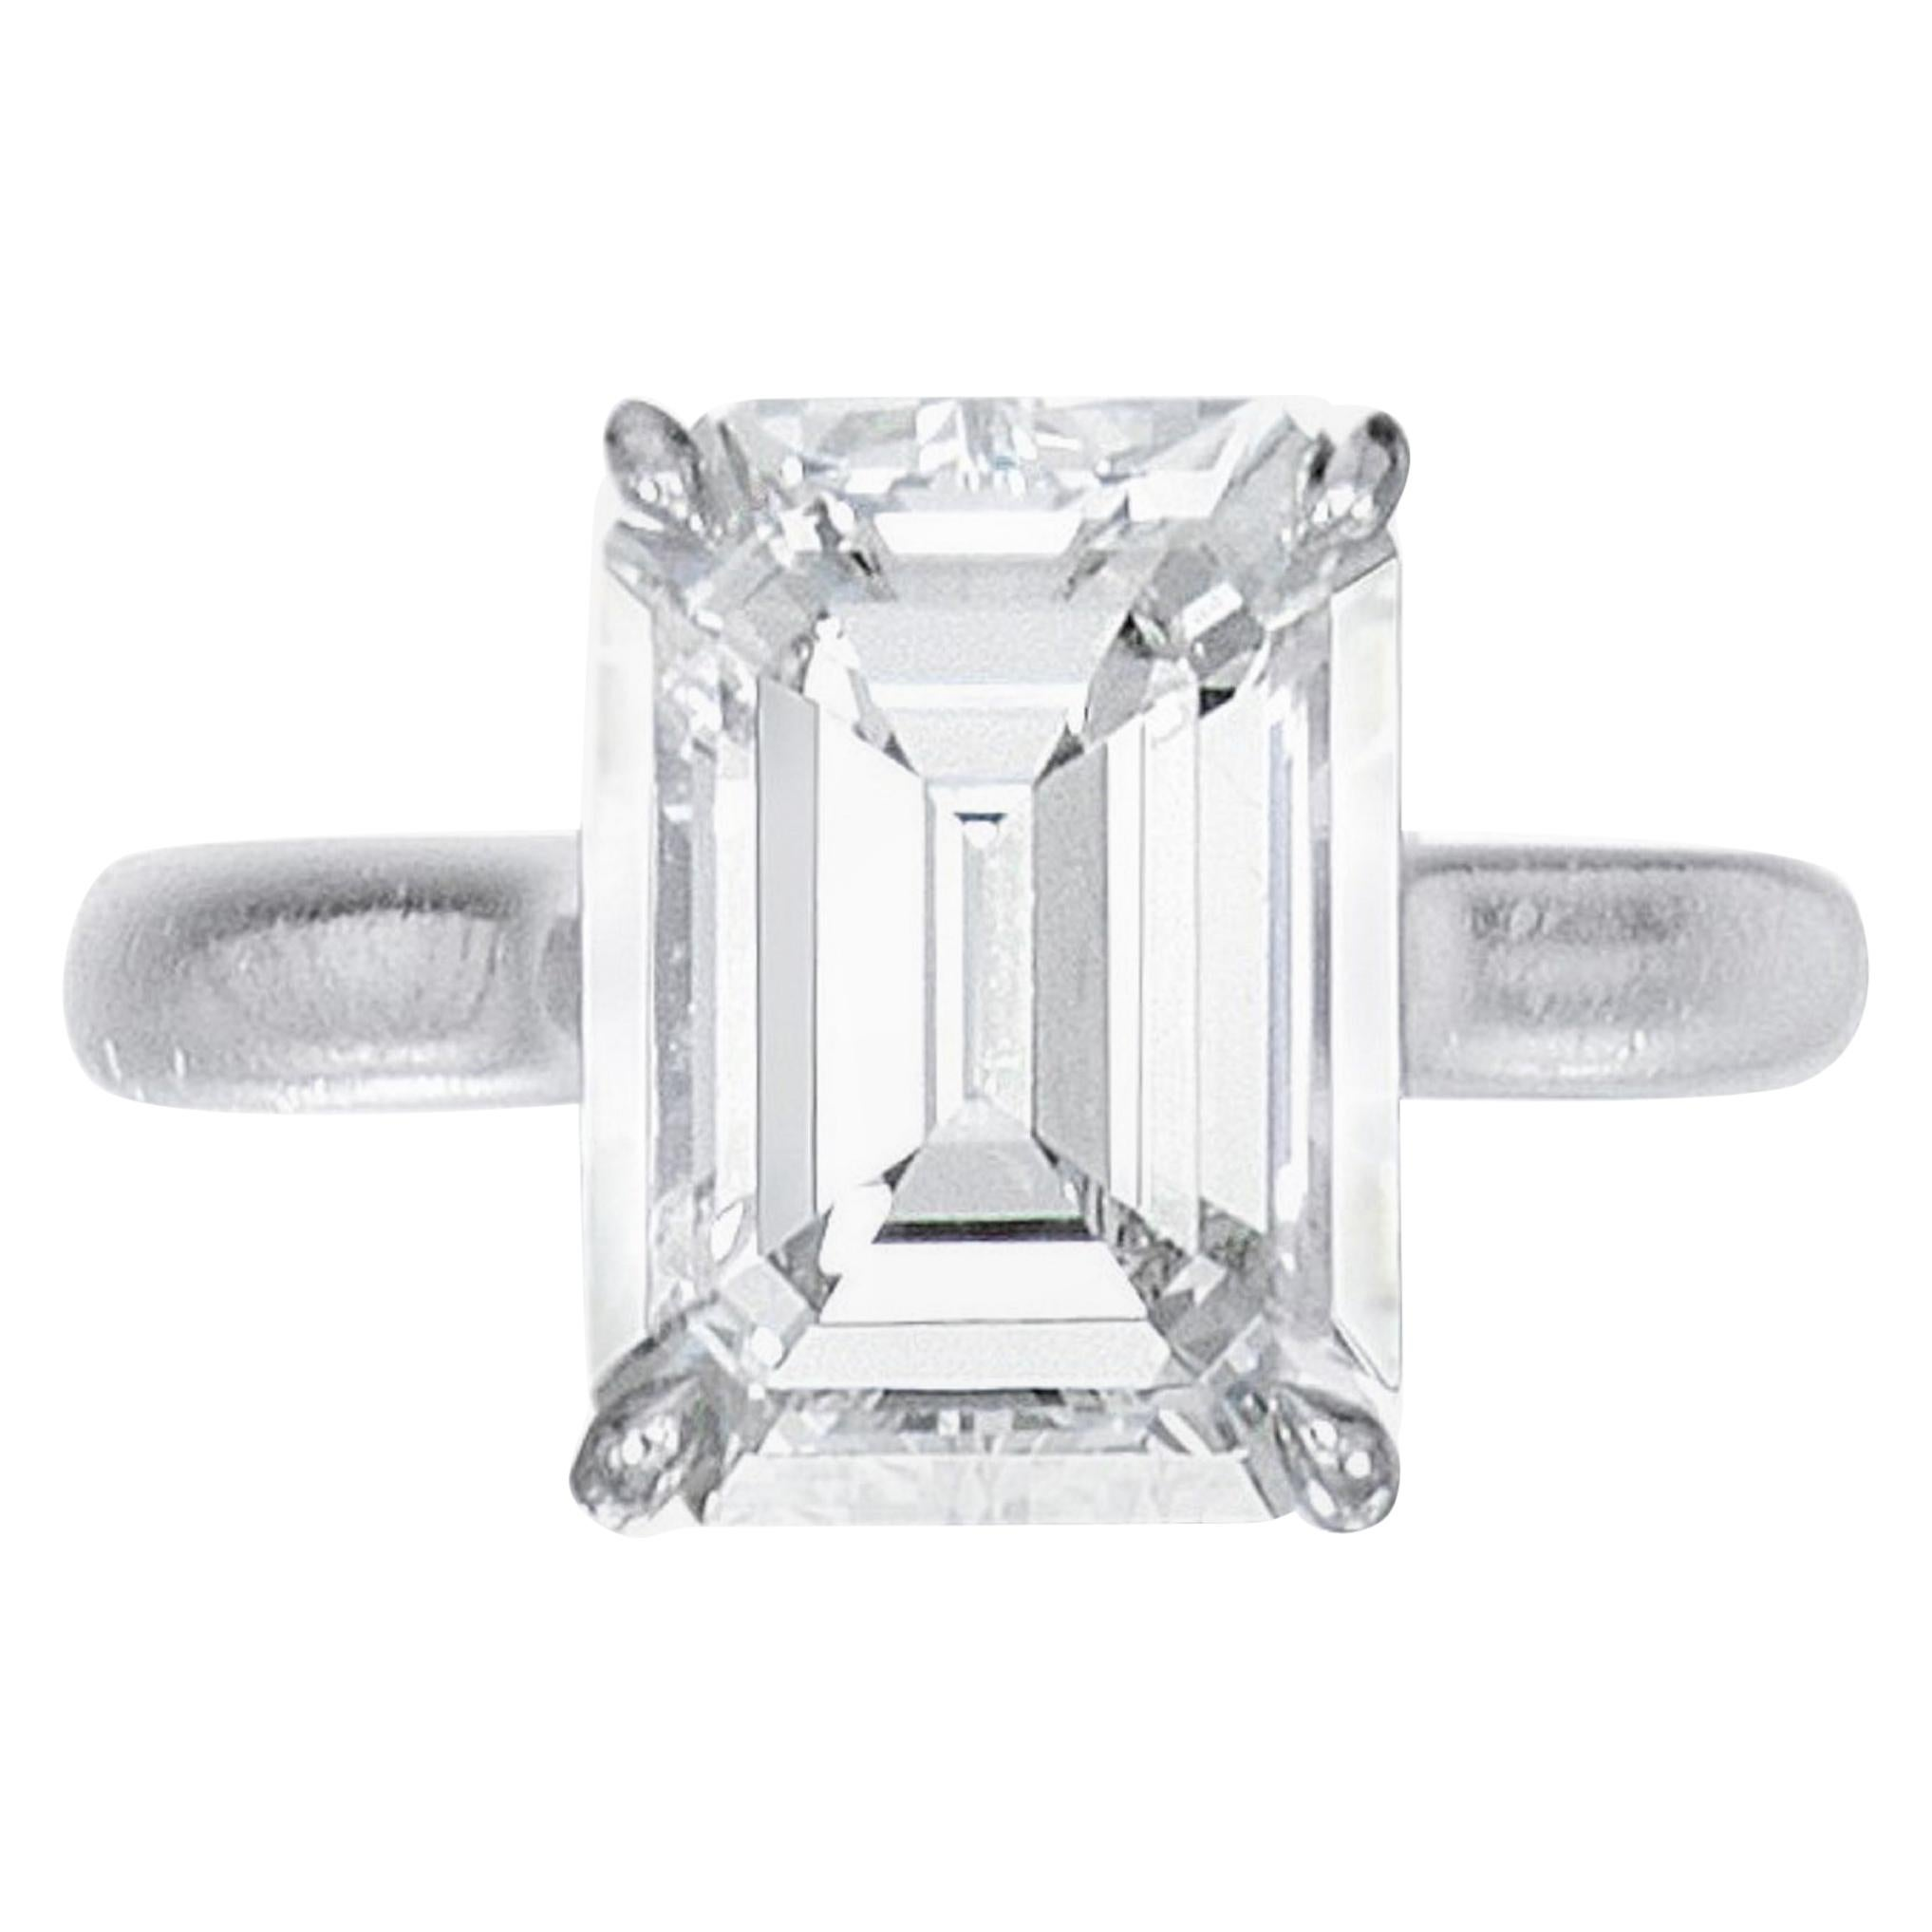 Internally Flawless D Color GIA Certified 2.23 Carat Emerald Cut Diamond Ring